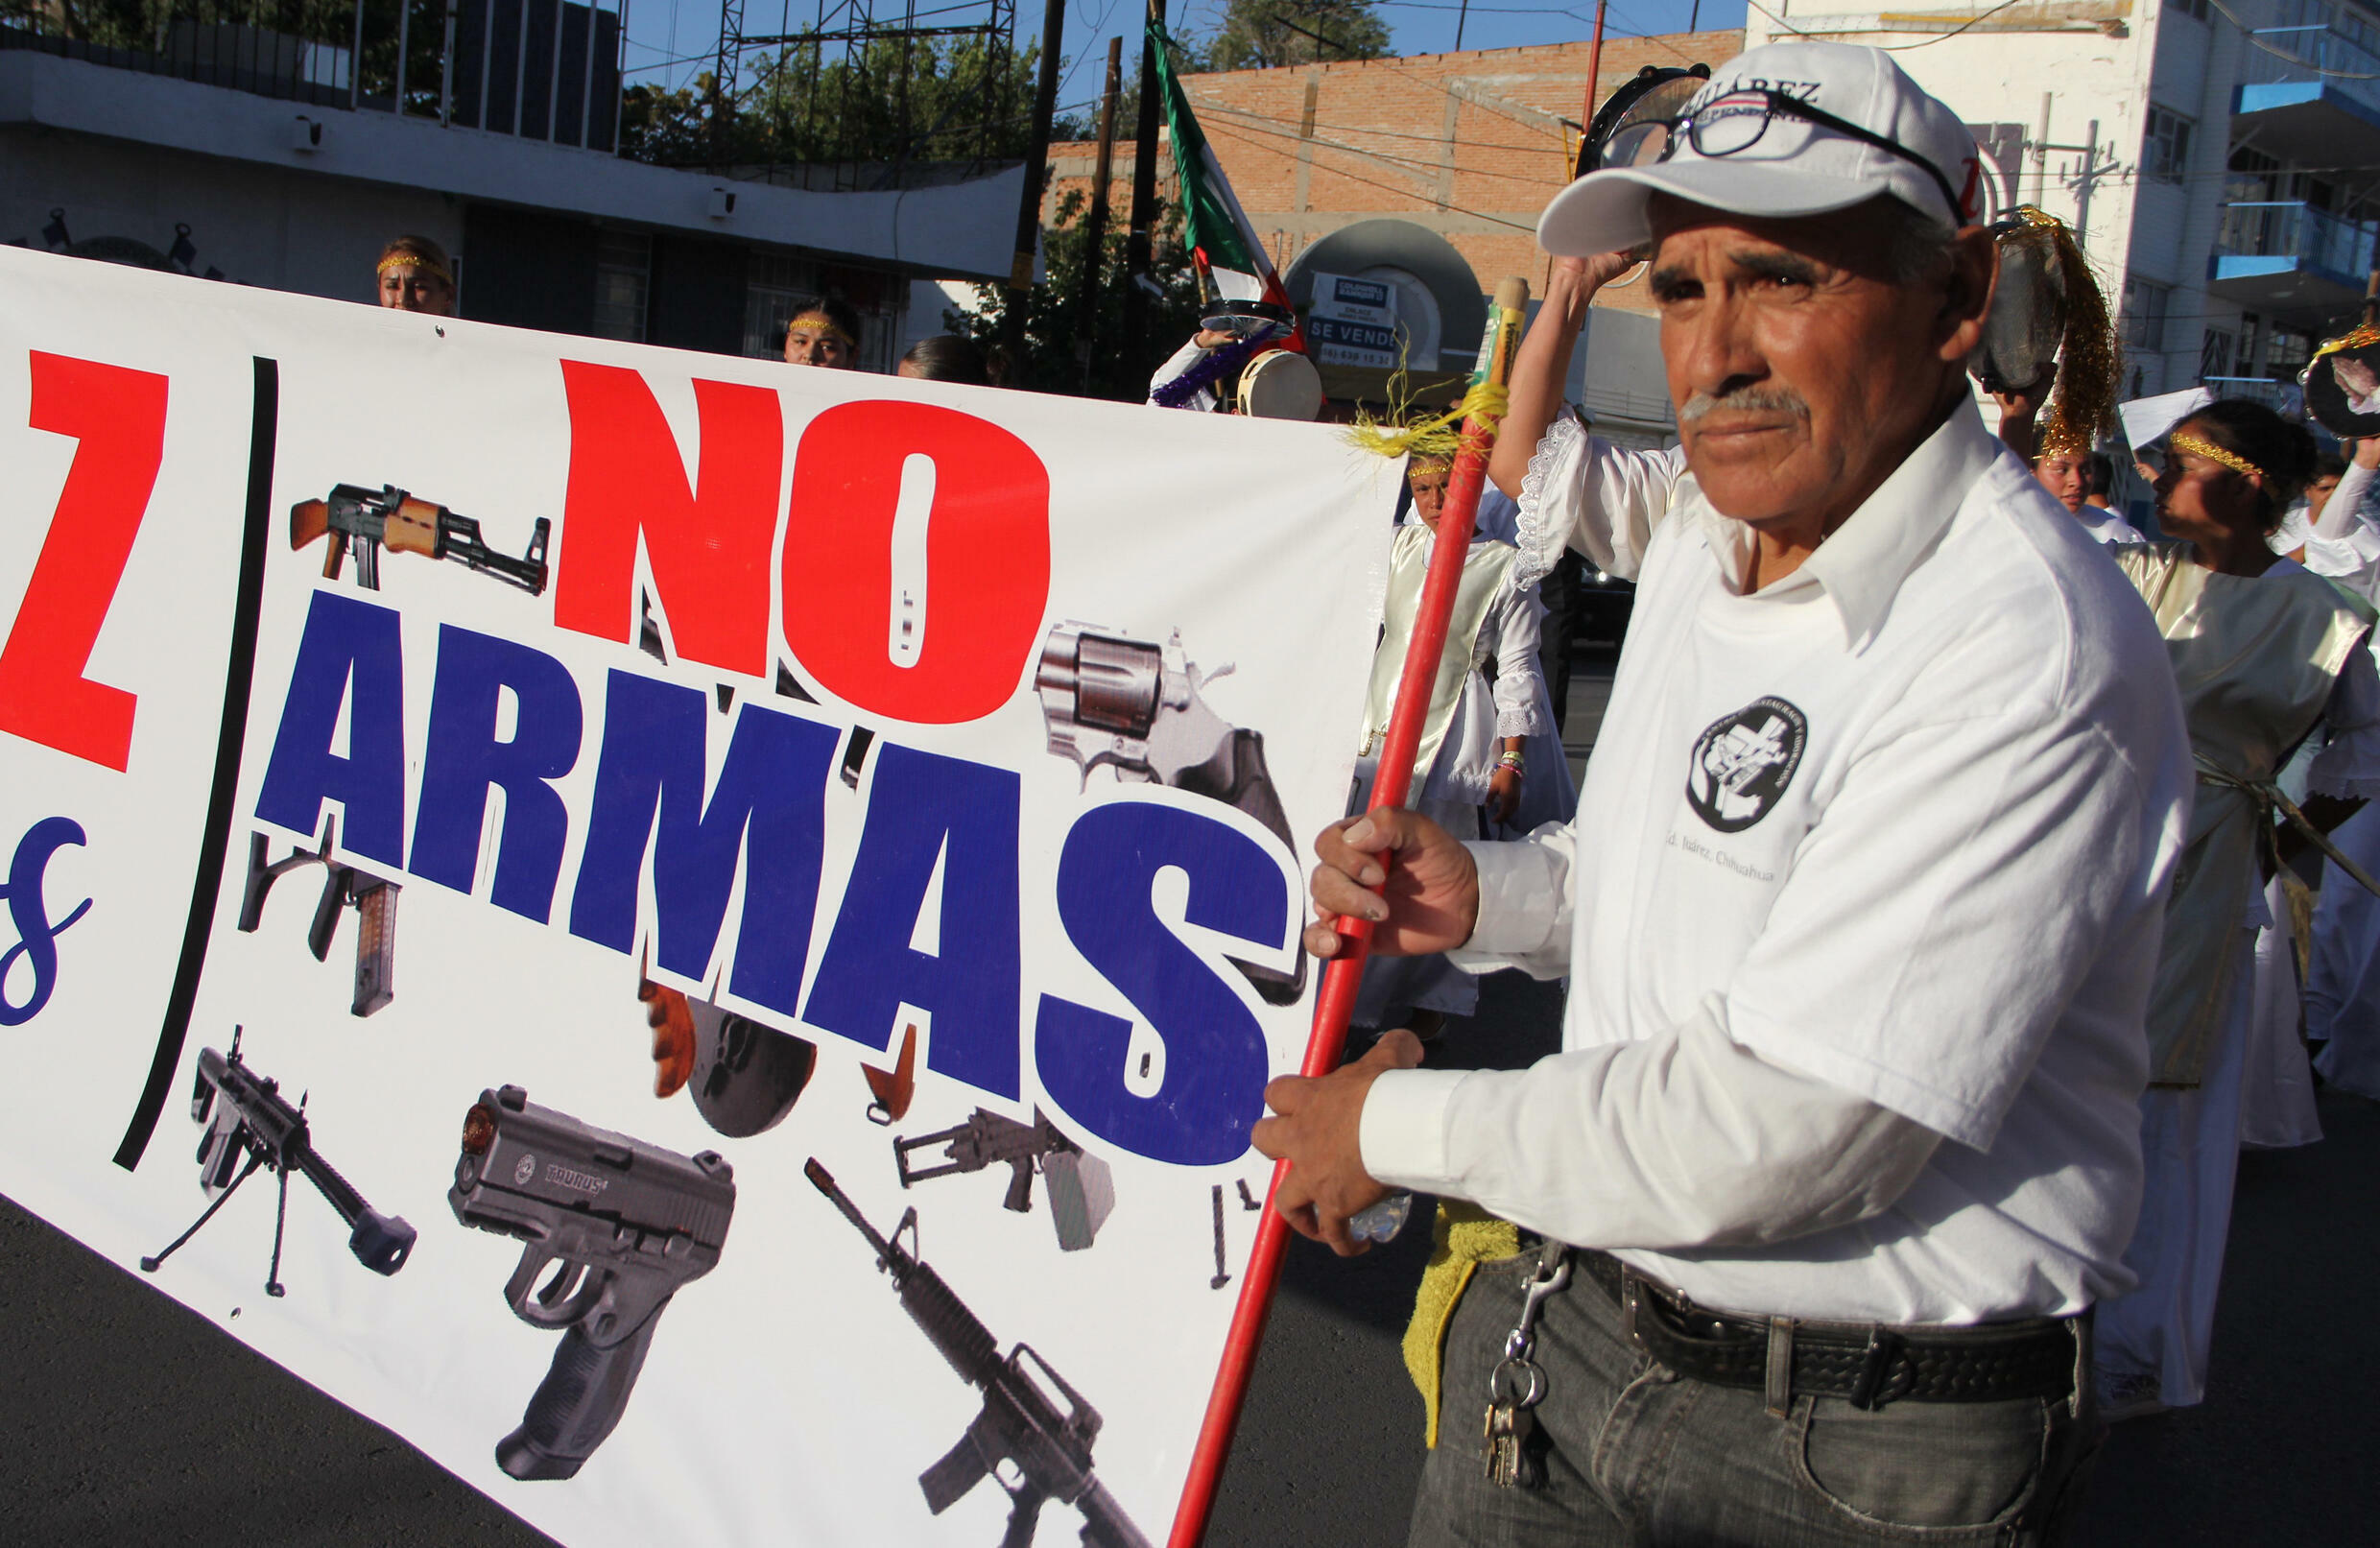 Mexico has seen more than 300,000 murders since 2006, prompting public protests against firearms